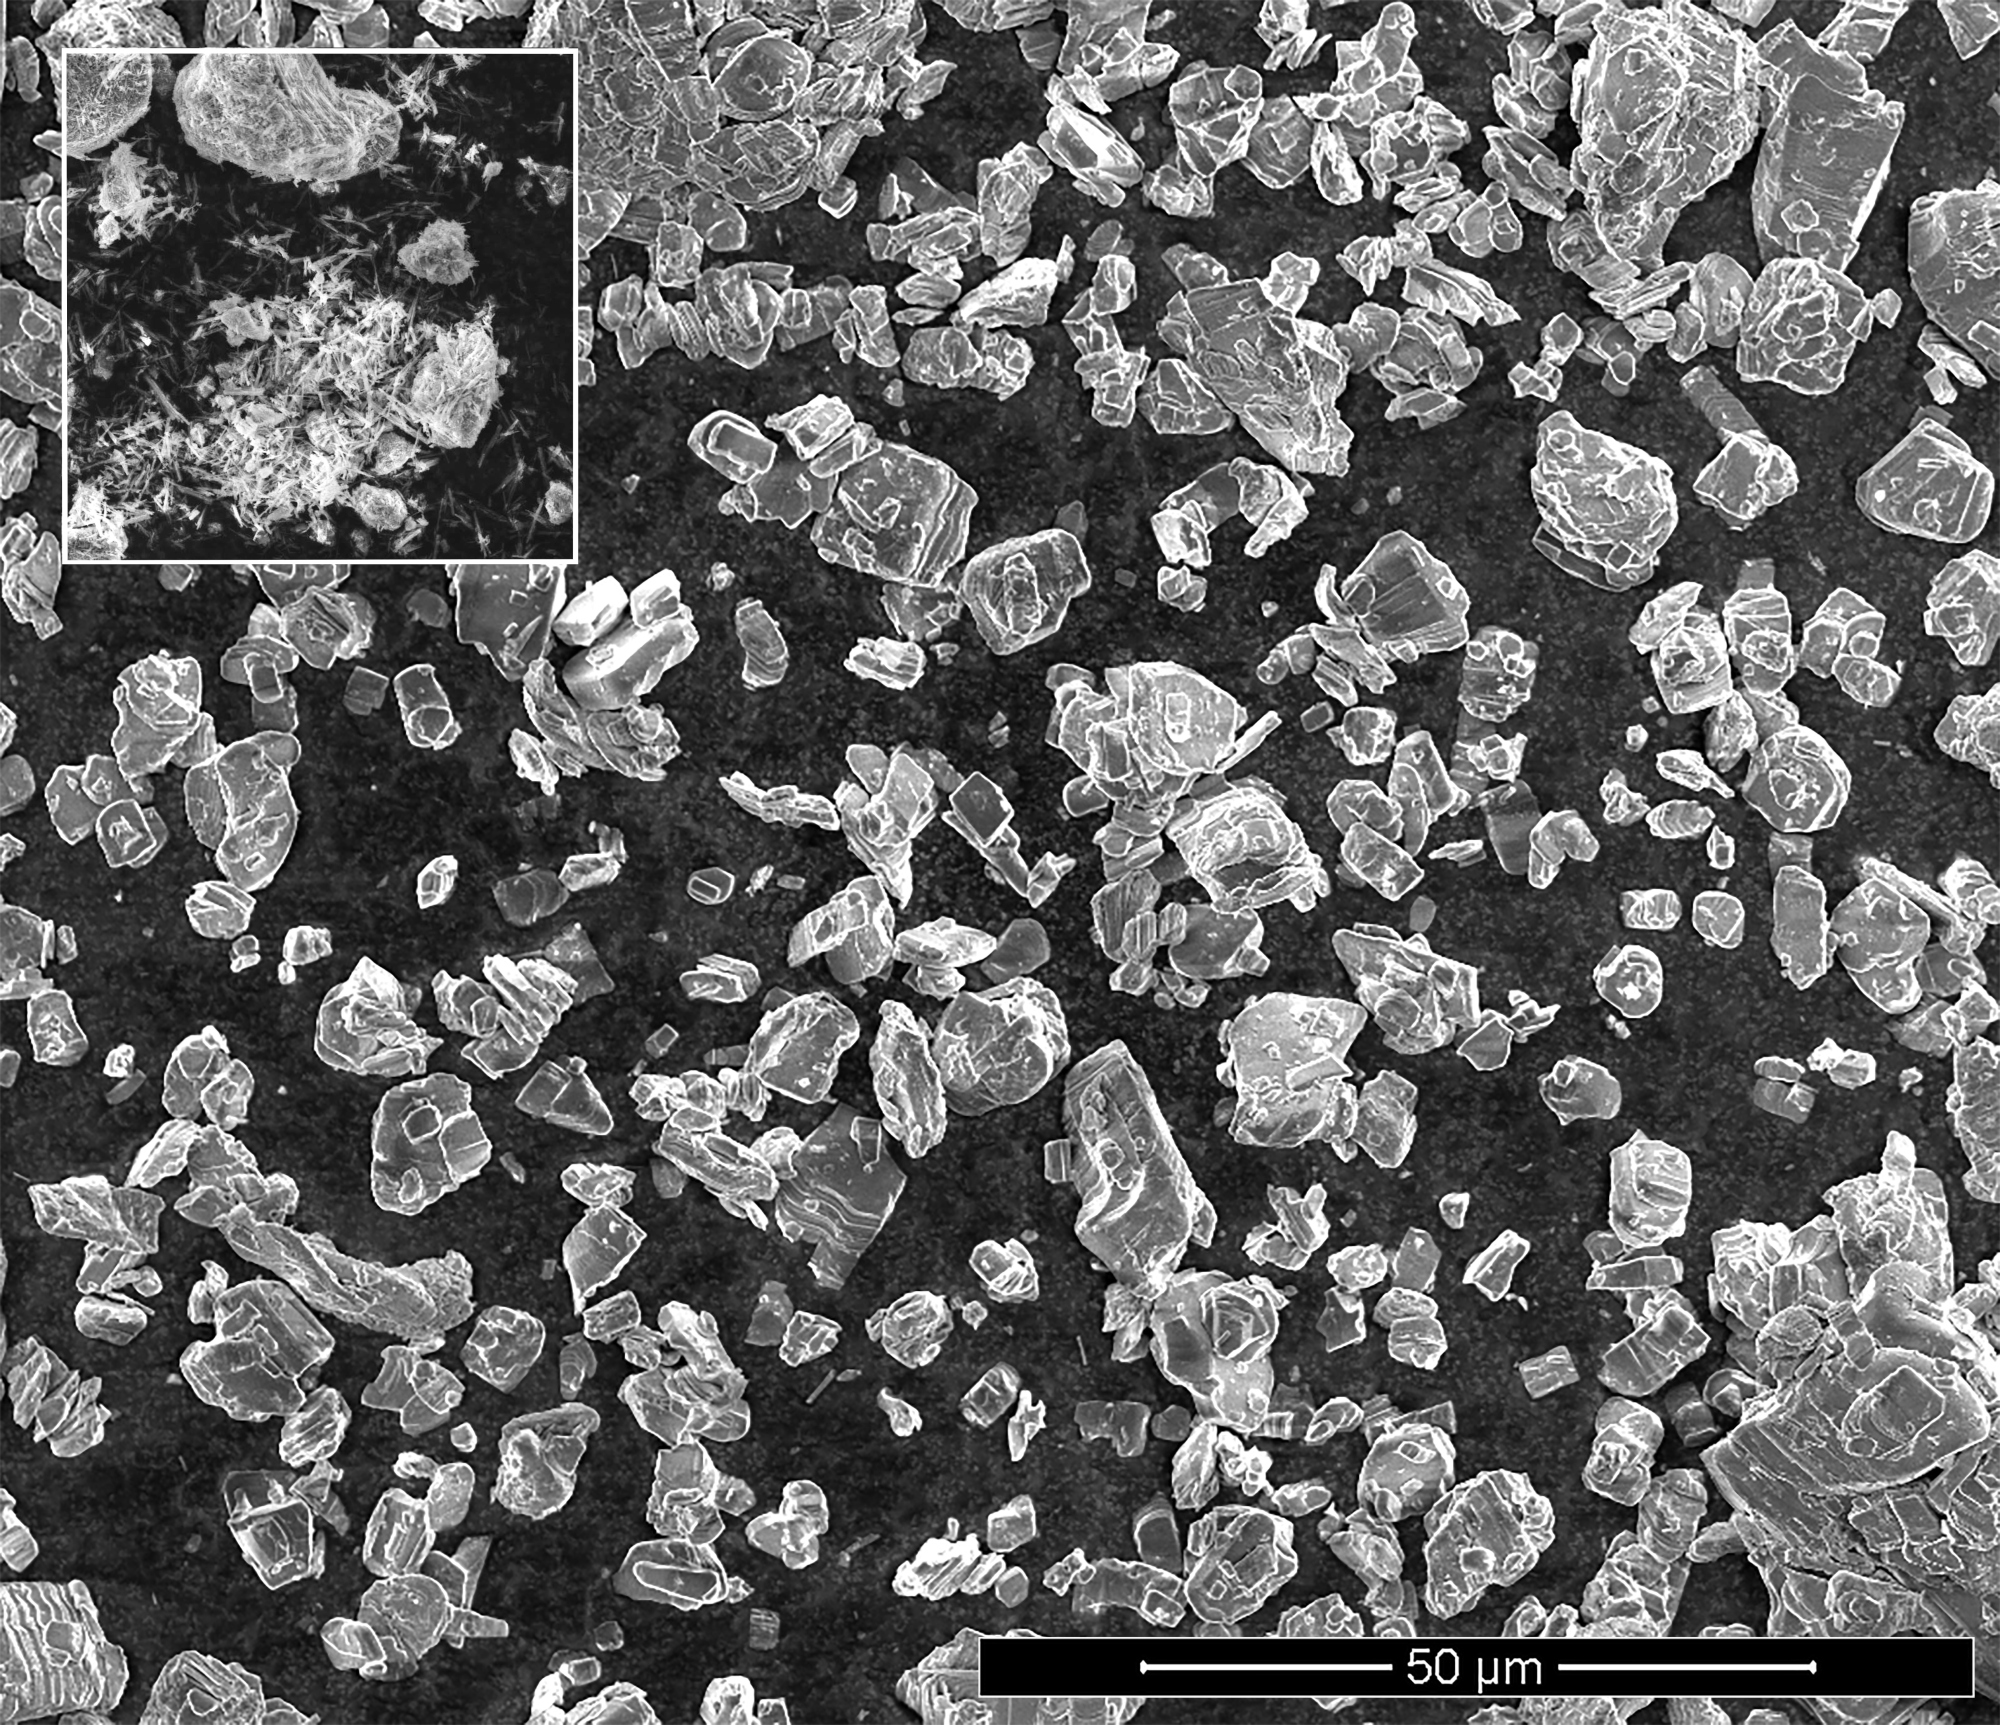 A sample of potassium titanate taken with a scanning electron microscope (SEM)